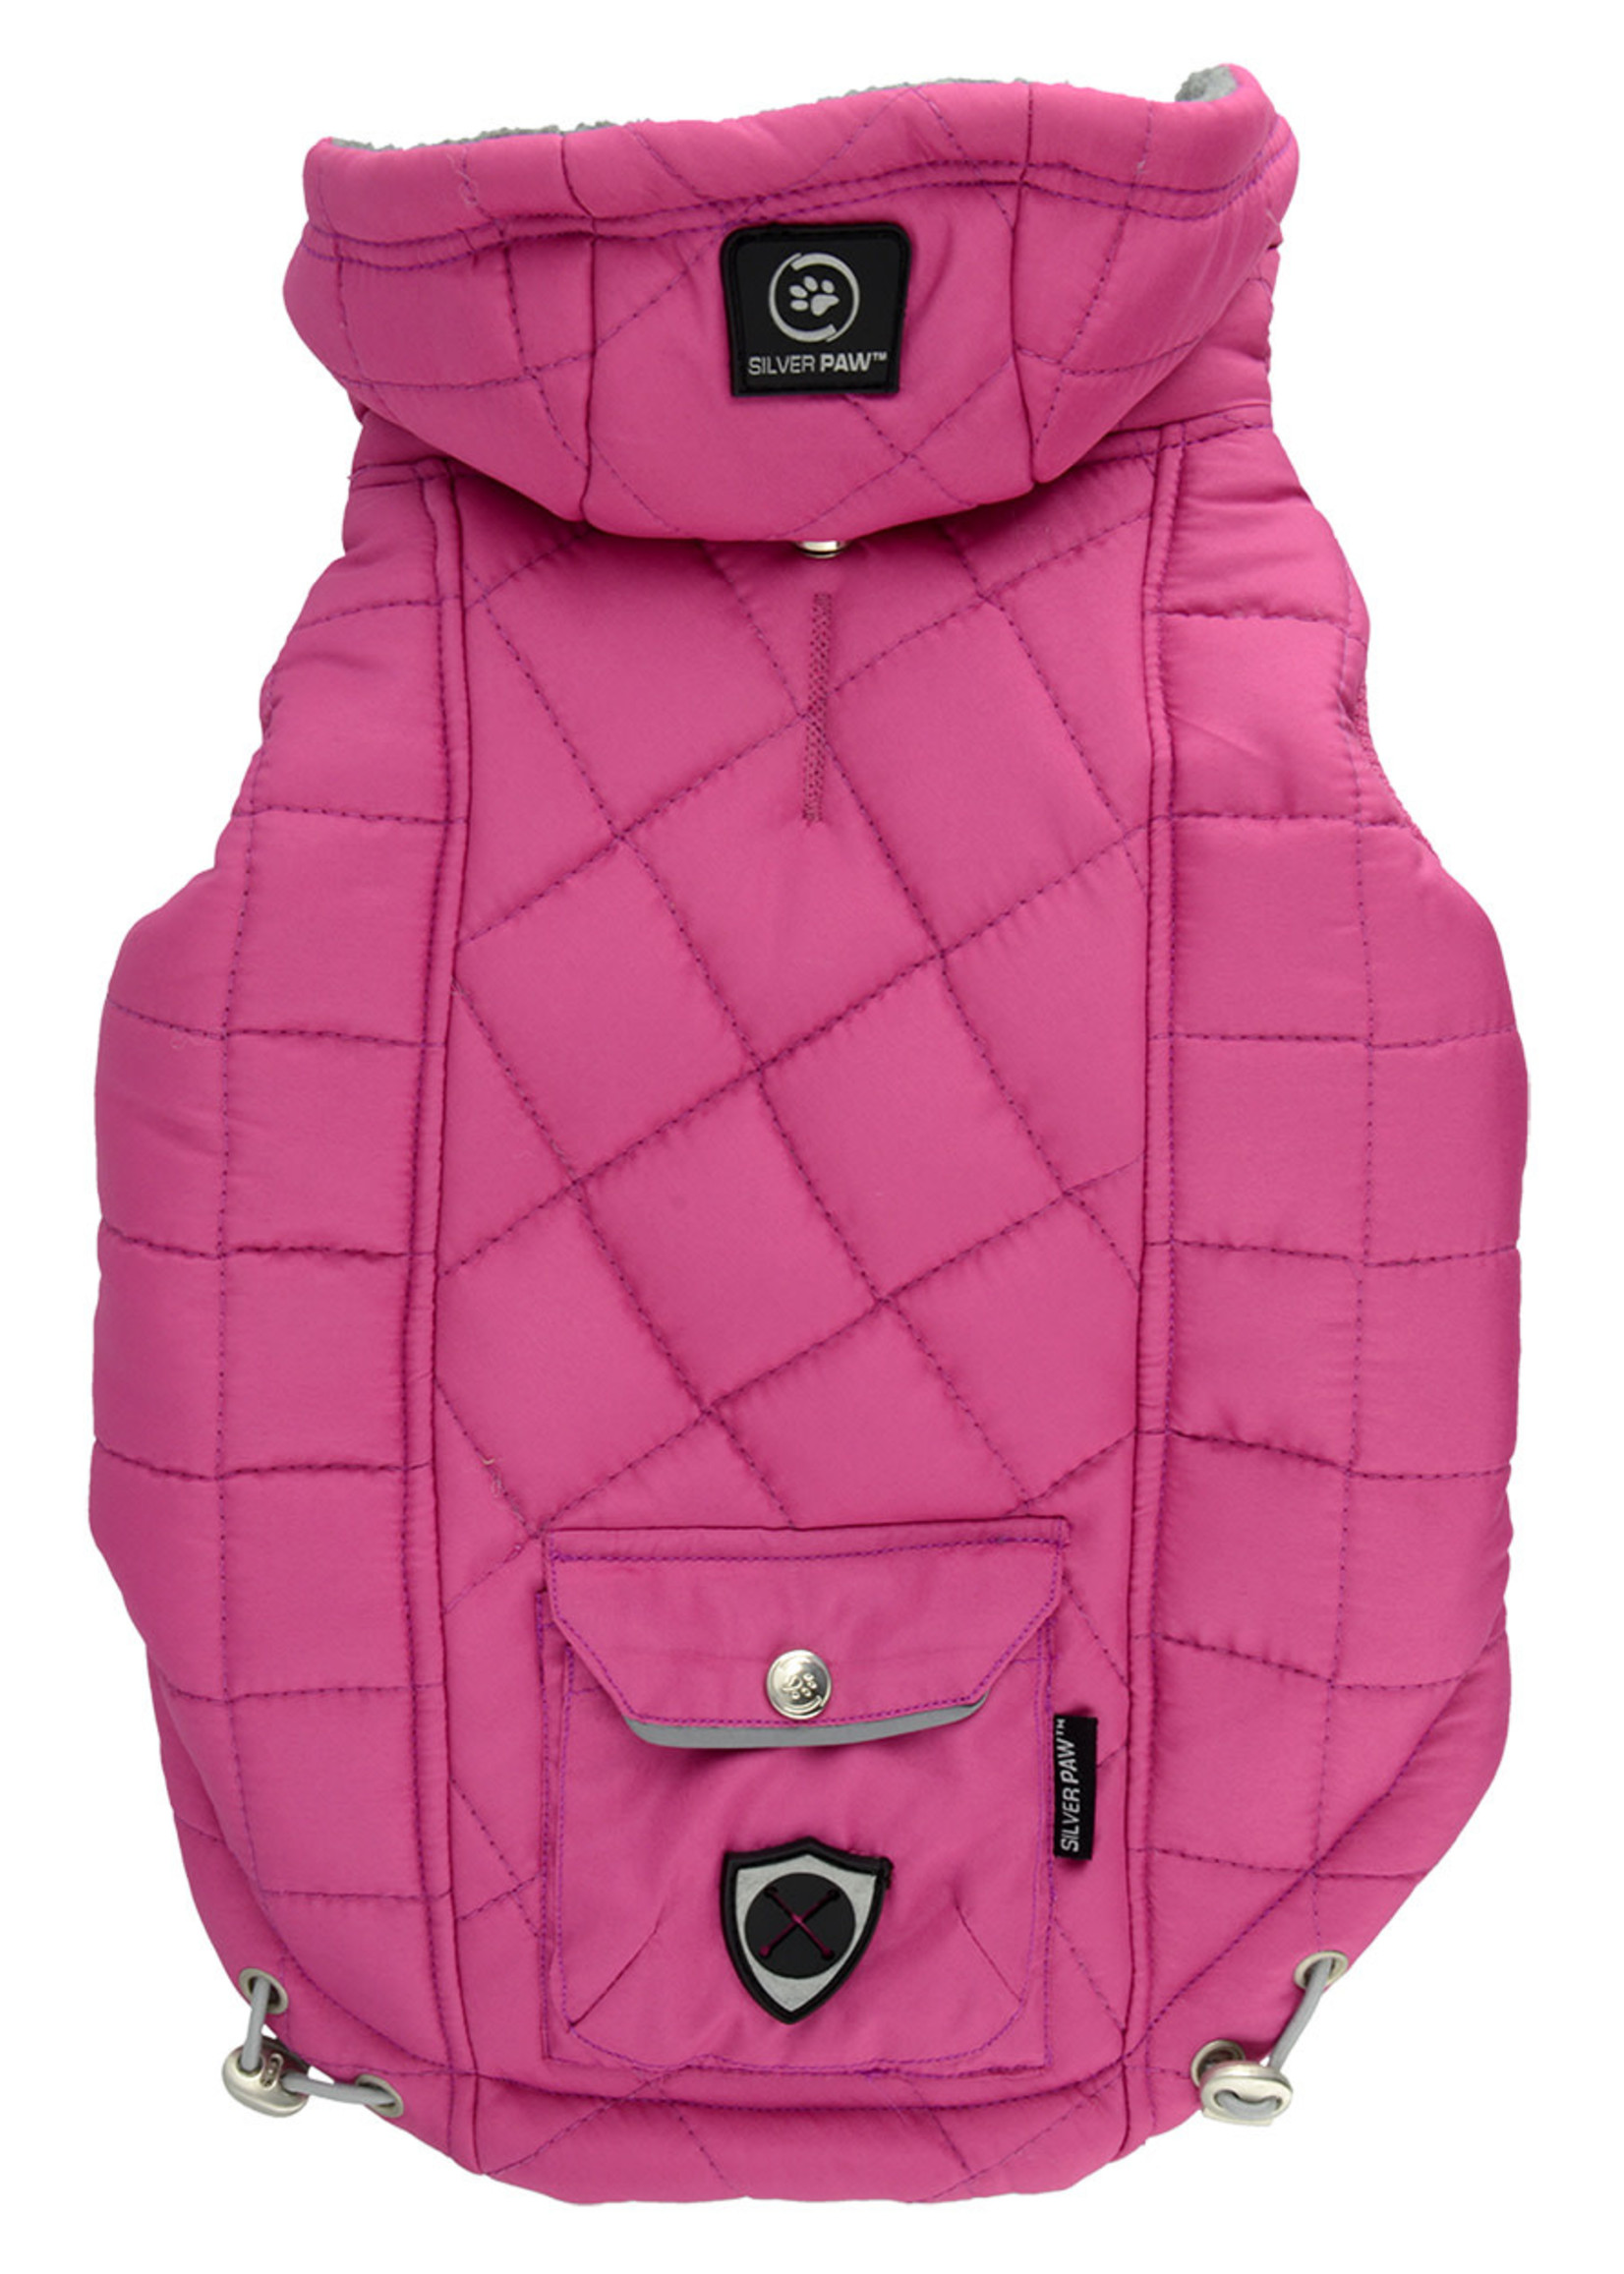 Protect Me - Alert Series Silver Paw™ Quilted Jacket with Pocket X-Small